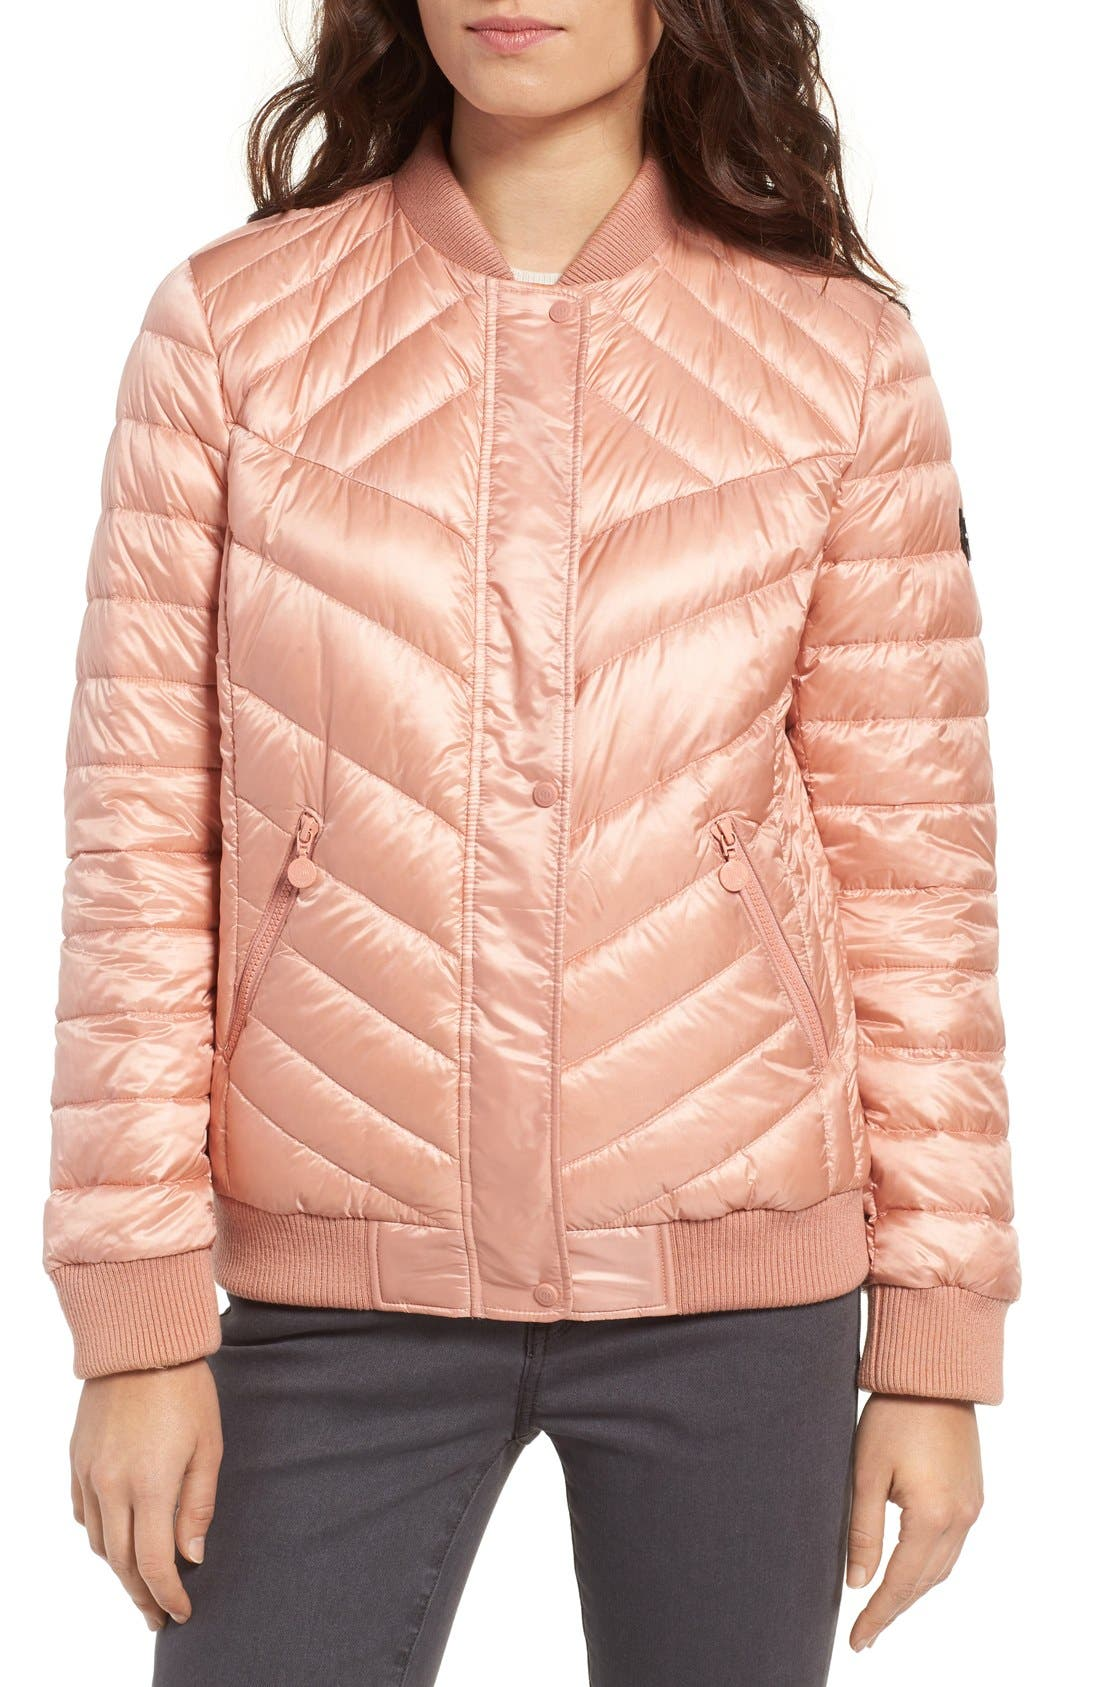 Water Resistant Insulated Bomber Jacket,                             Alternate thumbnail 6, color,                             Peach Blush